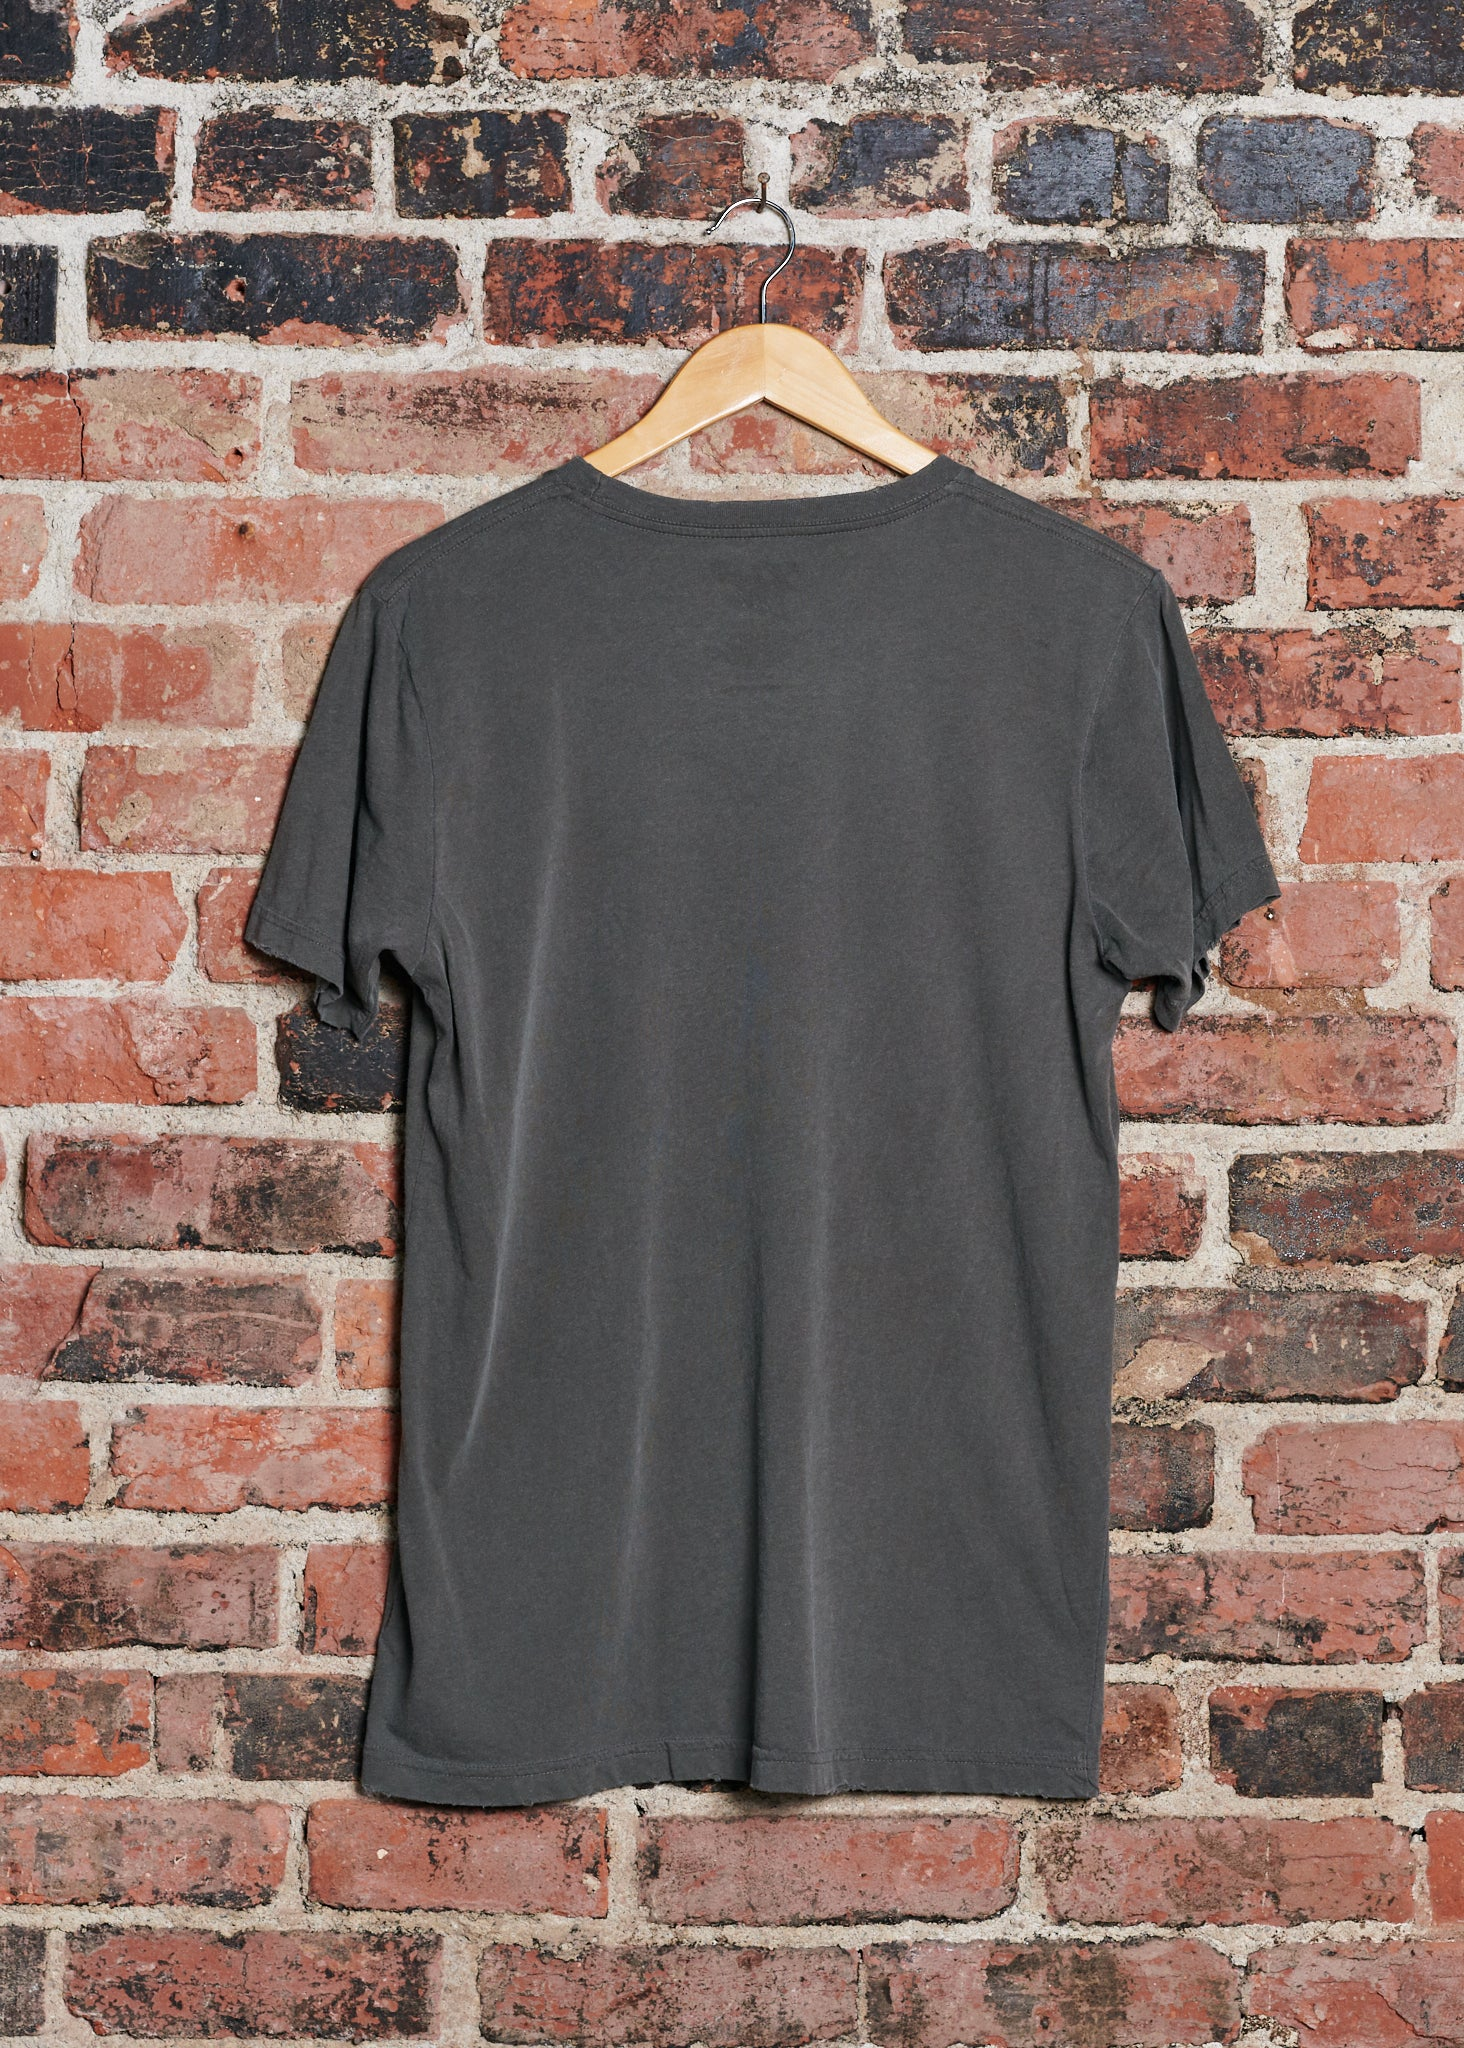 DOWN ON THE CORNER MEN'S T-Shirt